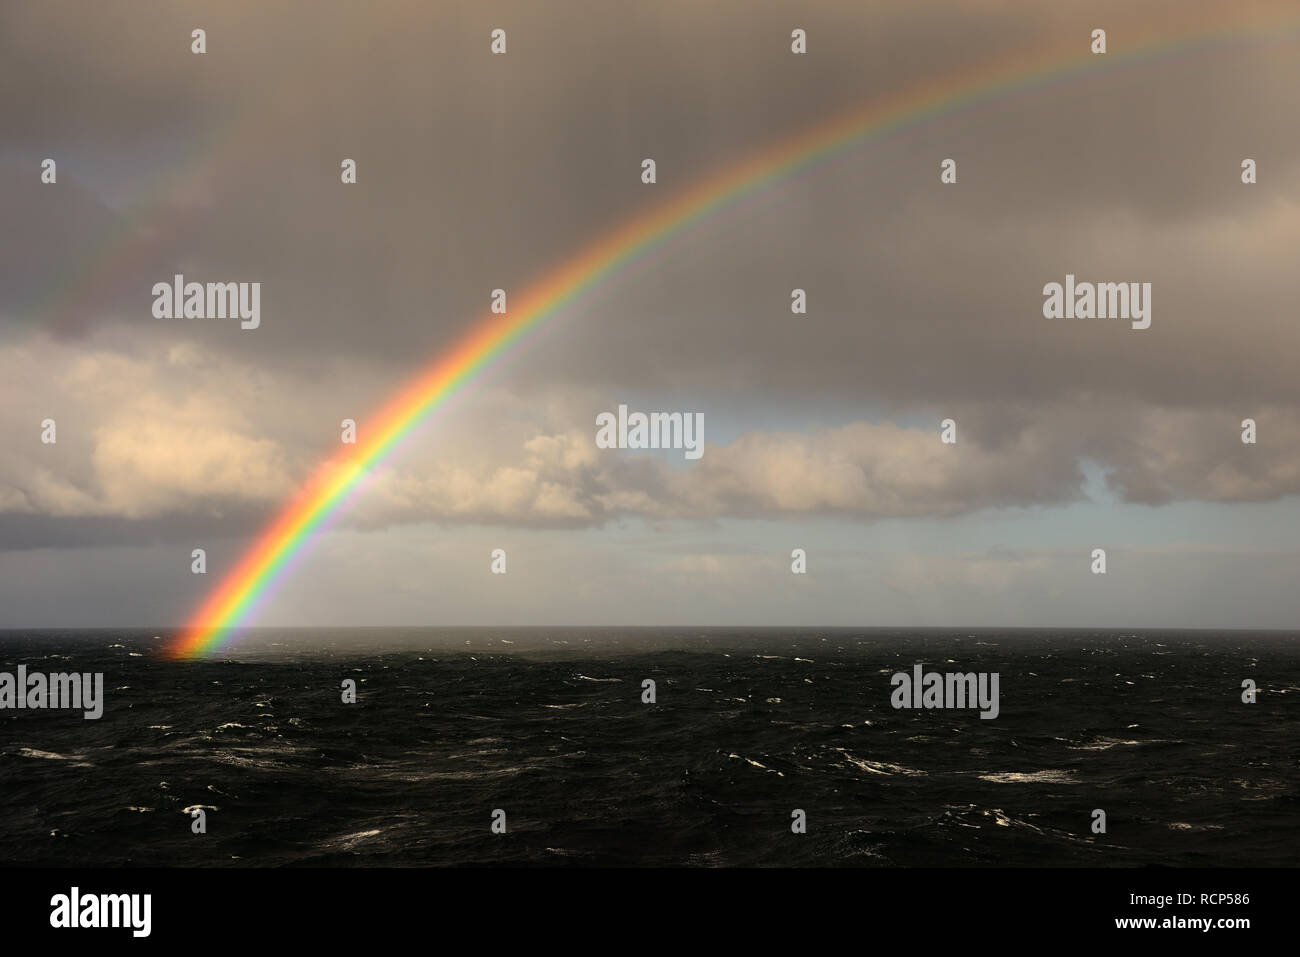 Rainbow over the ocean. - Stock Image